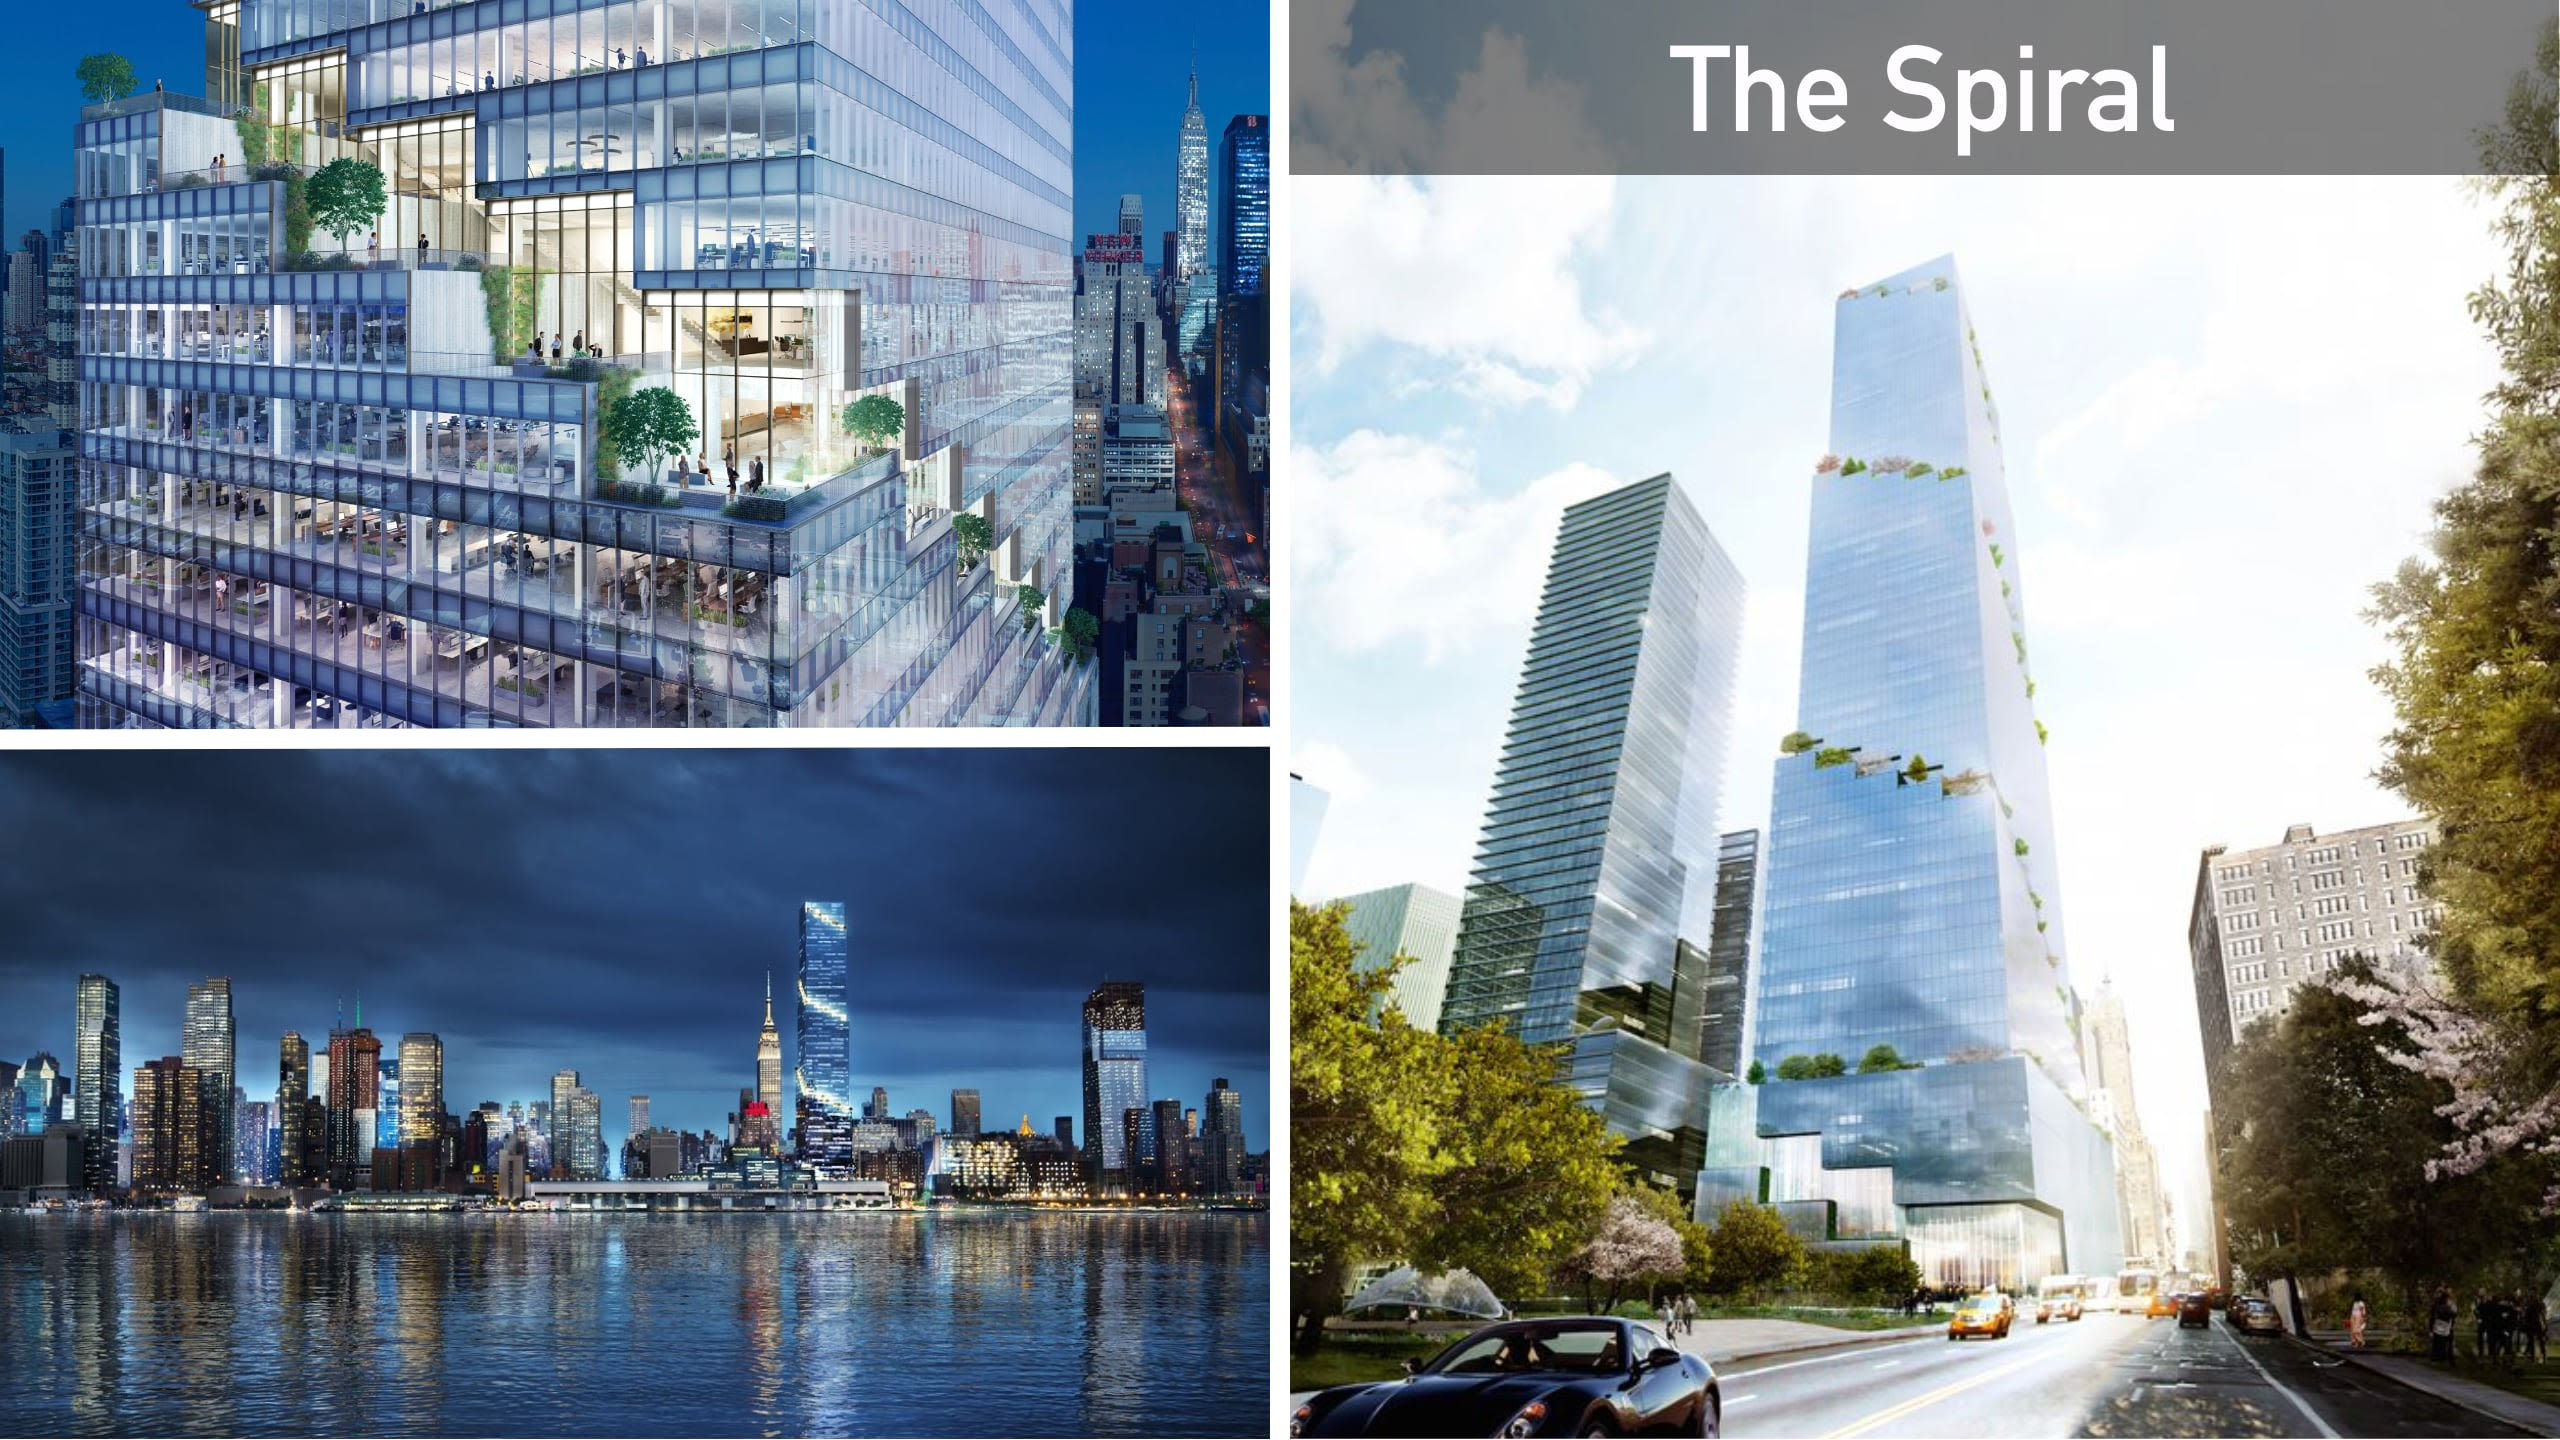 """""""From The High Line to the skyline""""  is the motto of The Spiral, meaning the transition from the High Line Park to vertical spiral gardens rising to the sky."""